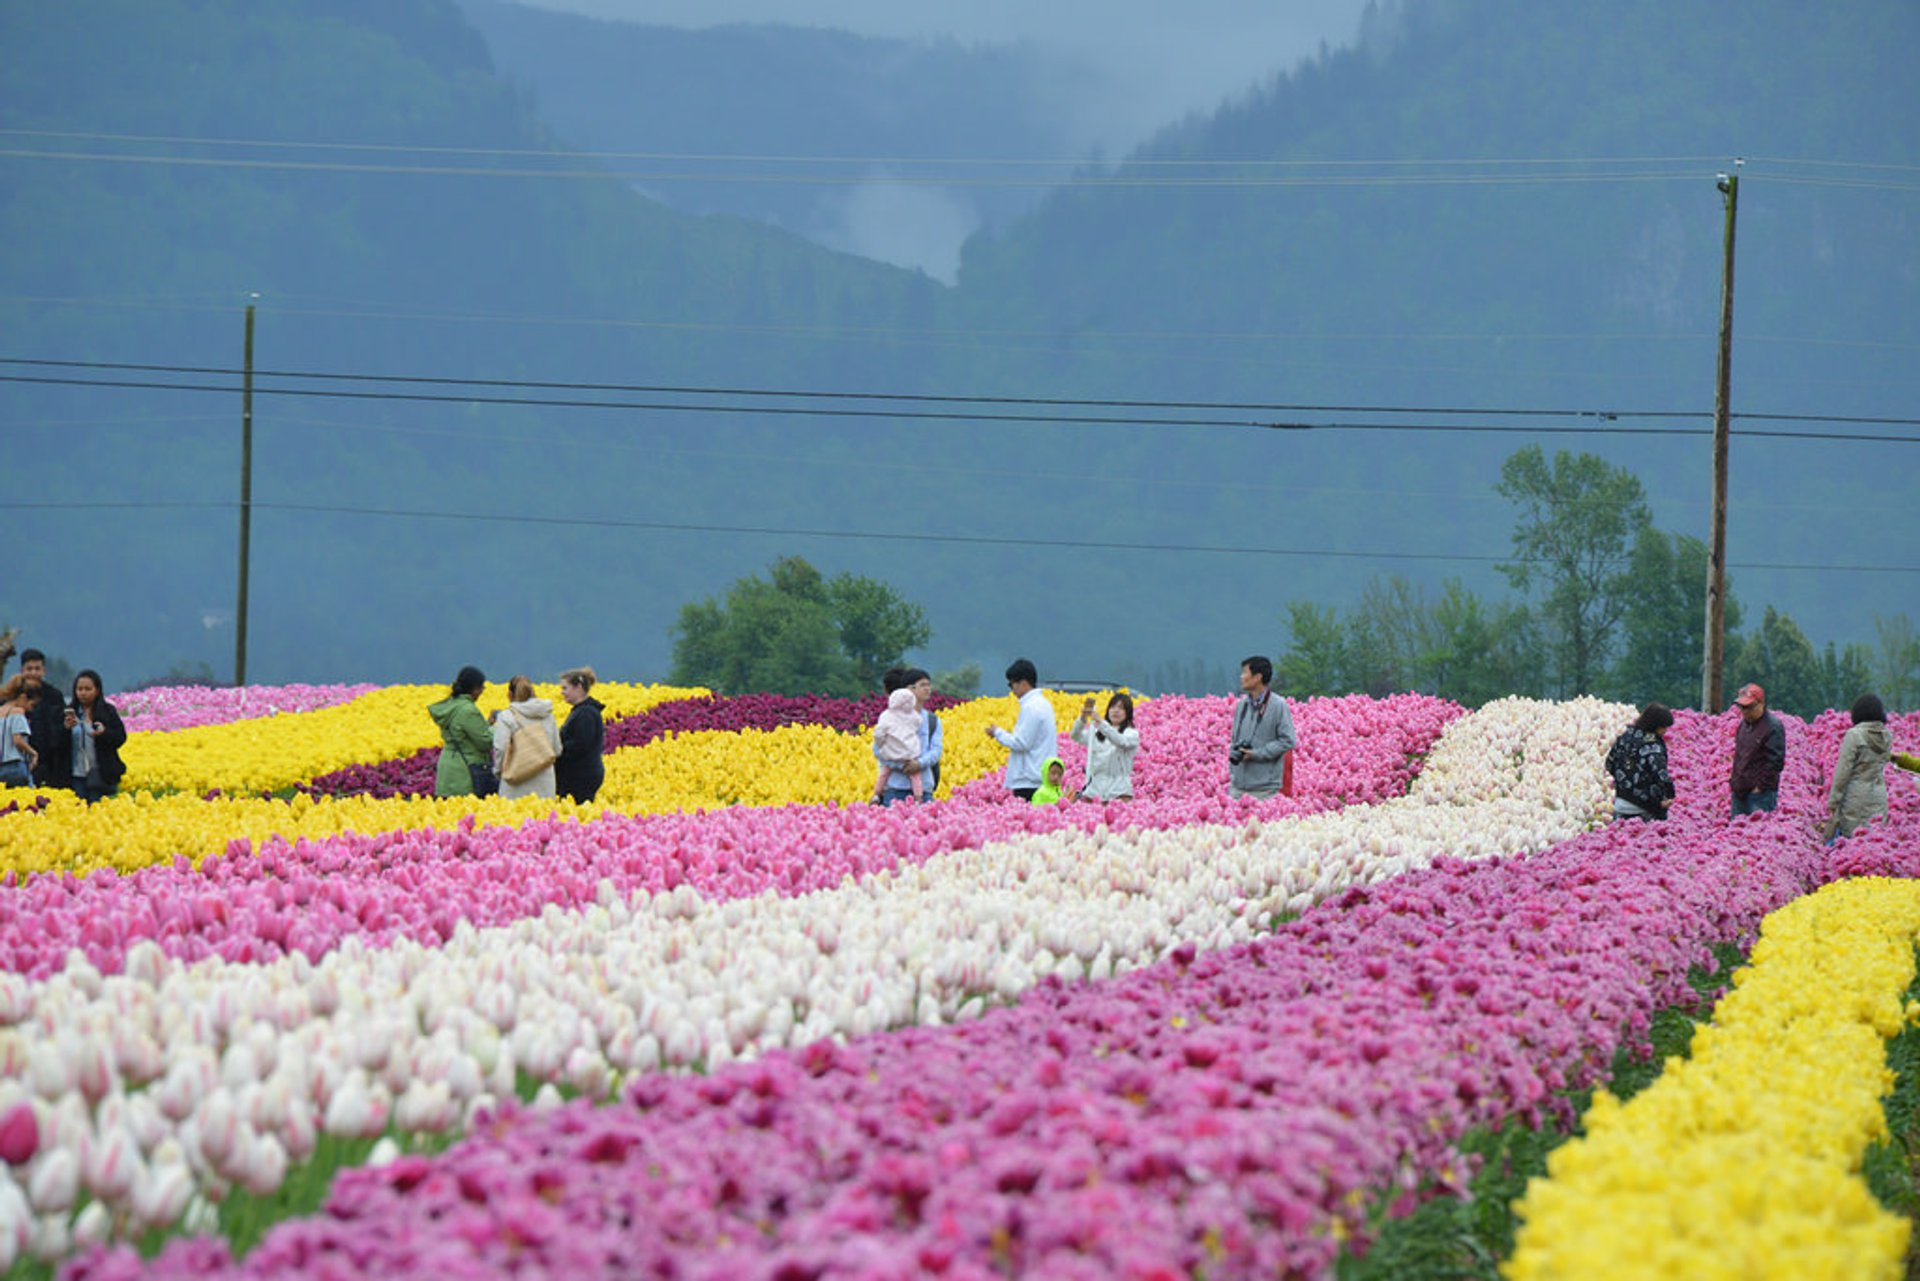 Best time for Abbotsford Tulip Festival in British Columbia 2020